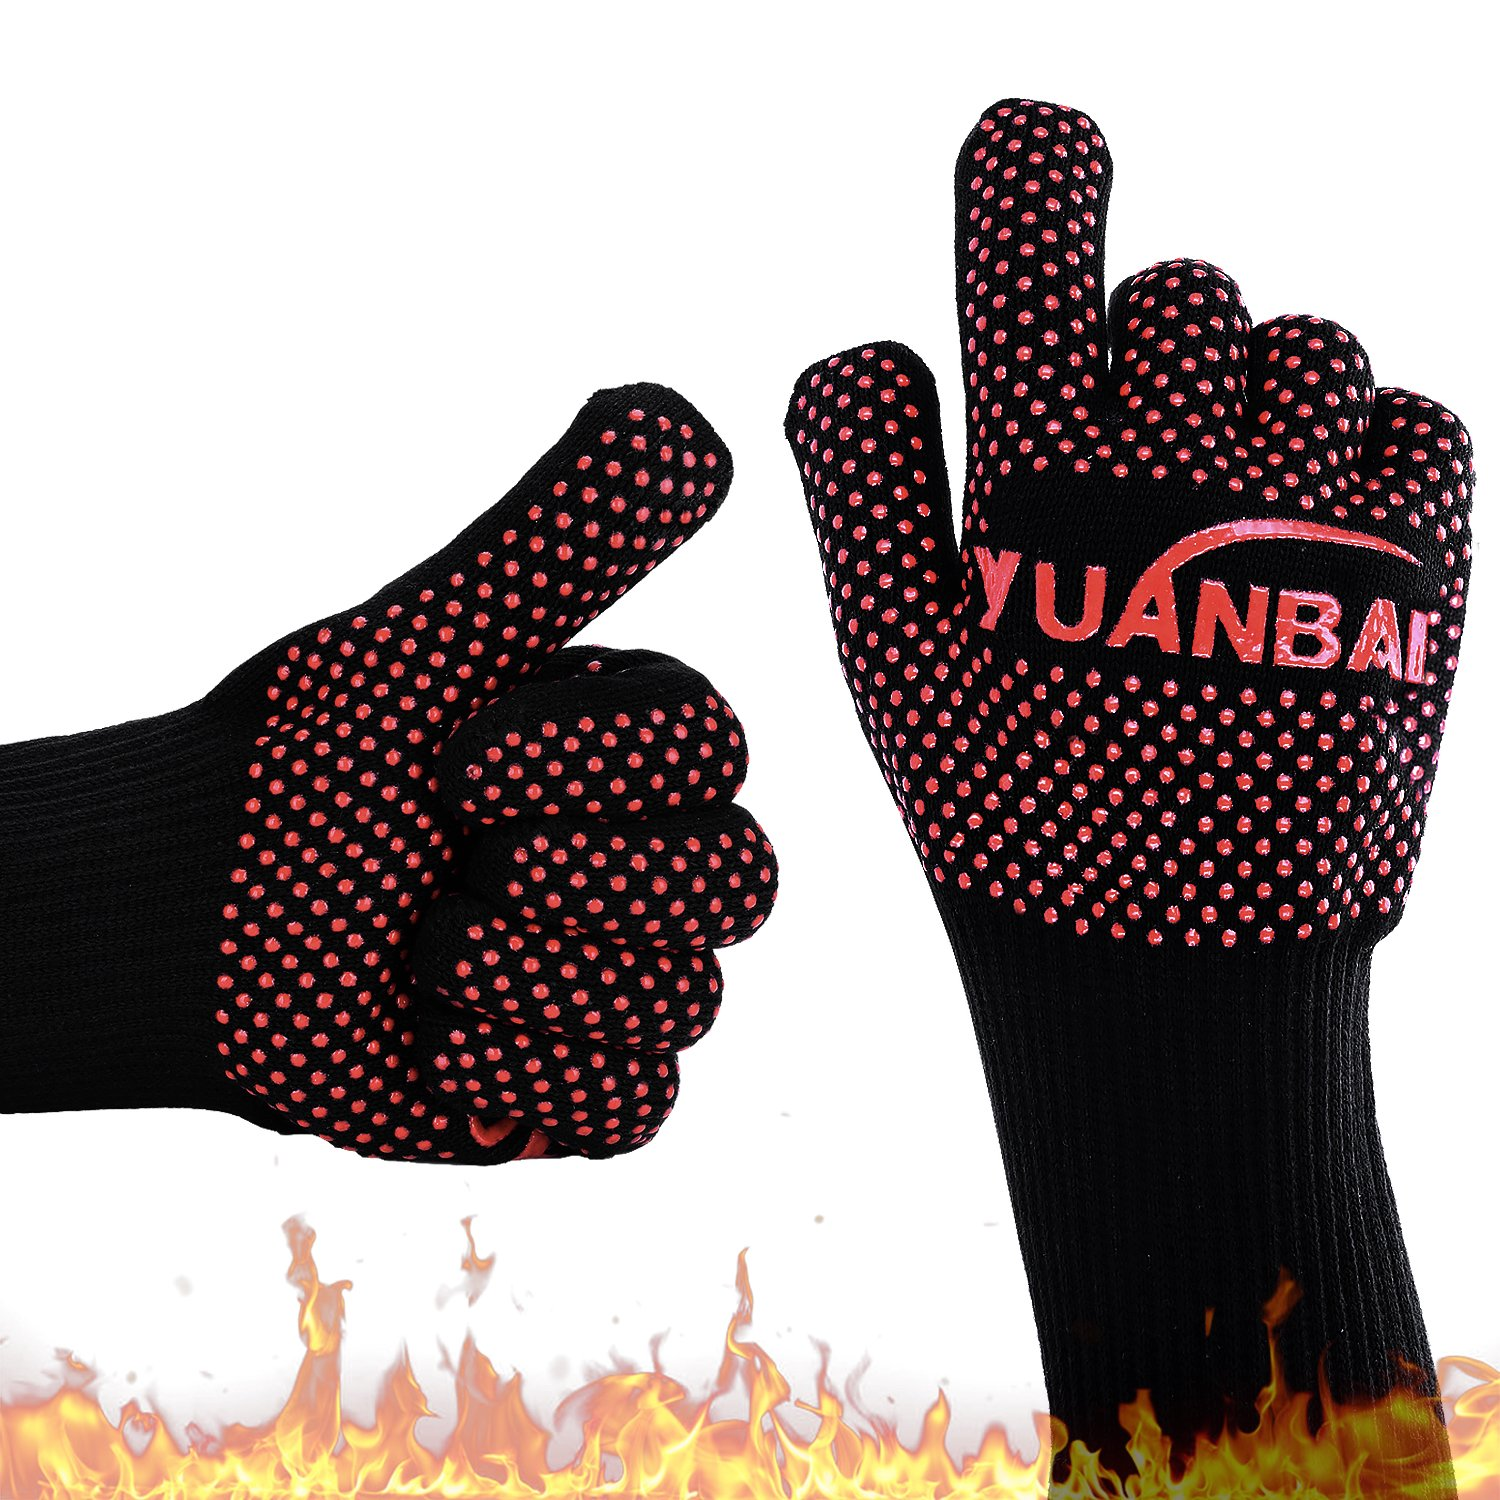 YUANBAI,BBQ Grilling Gloves Heat Resistant Oven Mitts Heat Resistant up to 662°F(350°C for The Grill, Oven, Fireplace, Baking Cakes, Barbecuing Ribs, Frying Fish or Grilling Steak and More